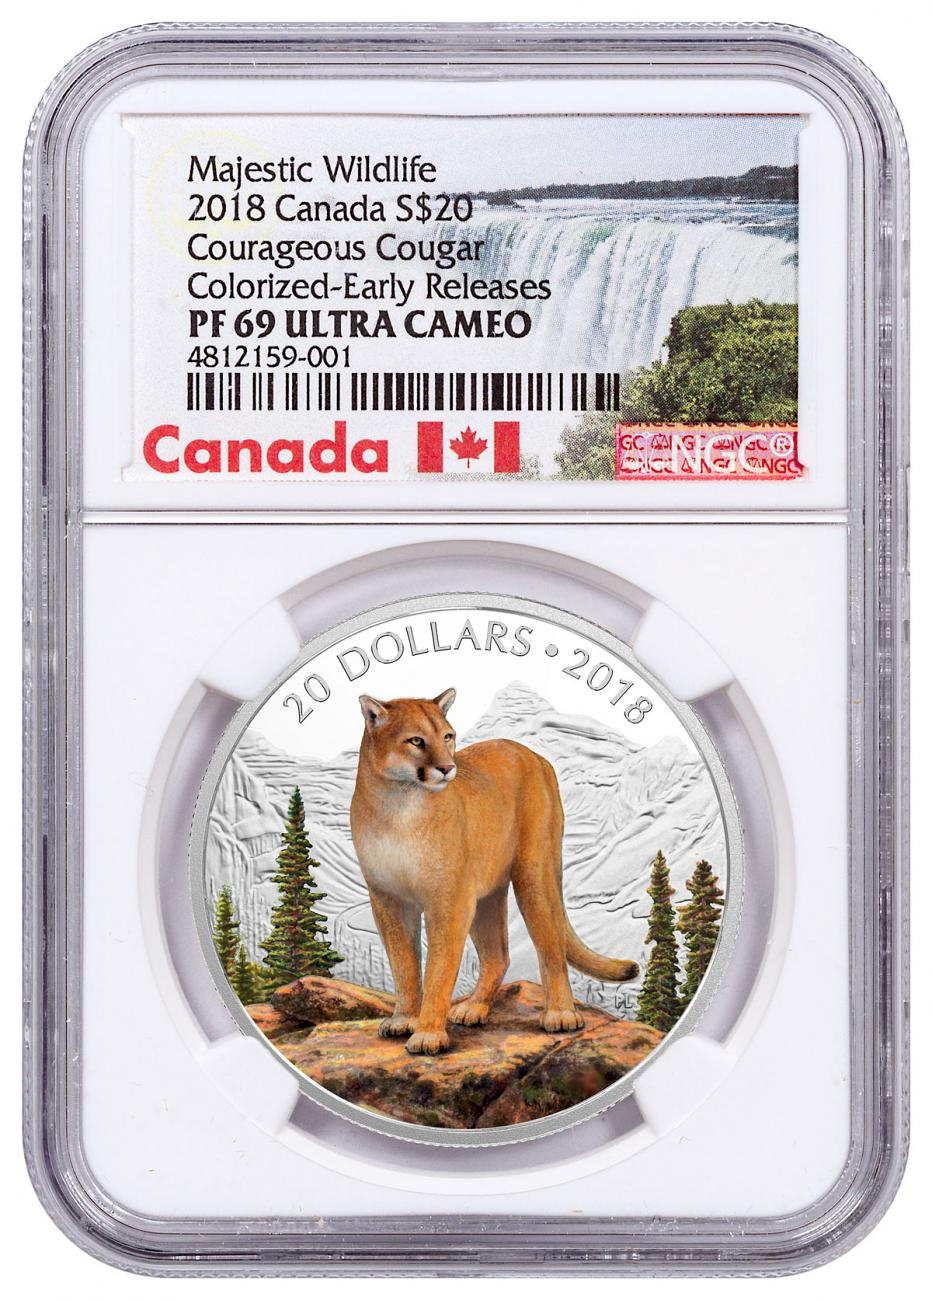 2018 Canada Majestic Wildlife - Courageous Cougar 1 oz Silver Proof $20 Coin NGC PF69 UC ER Exclusive Canada Label